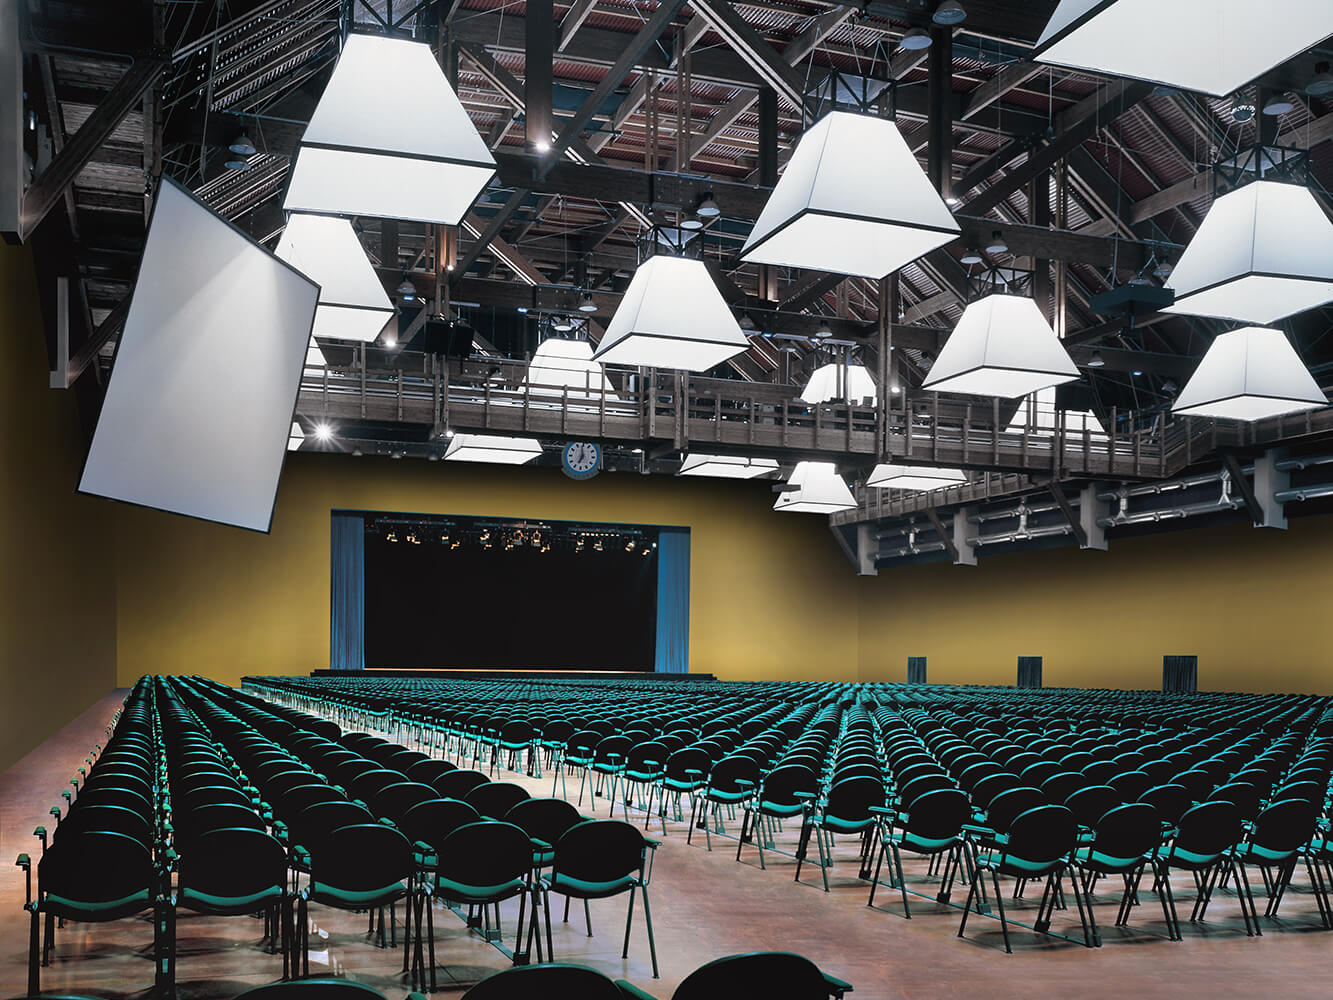 Palacassa Pavilion Theatre, Parma Fairgrounds - Modulamm chairs by LAMM